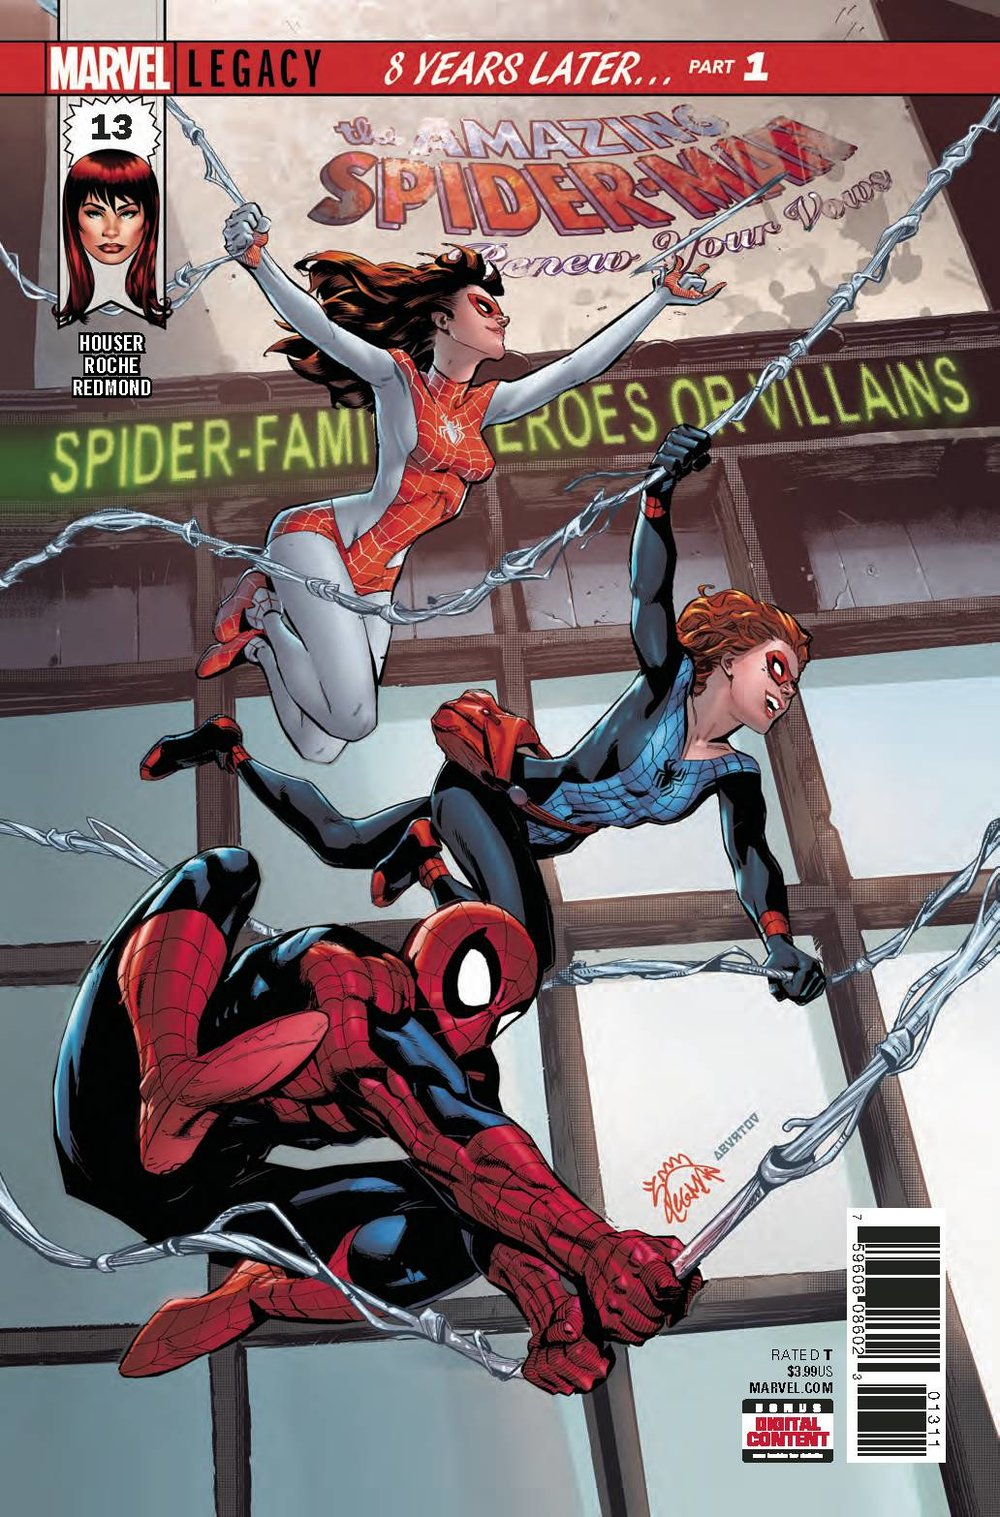 AMAZING SPIDER-MAN RENEW YOUR VOWS 13 LEG.jpg